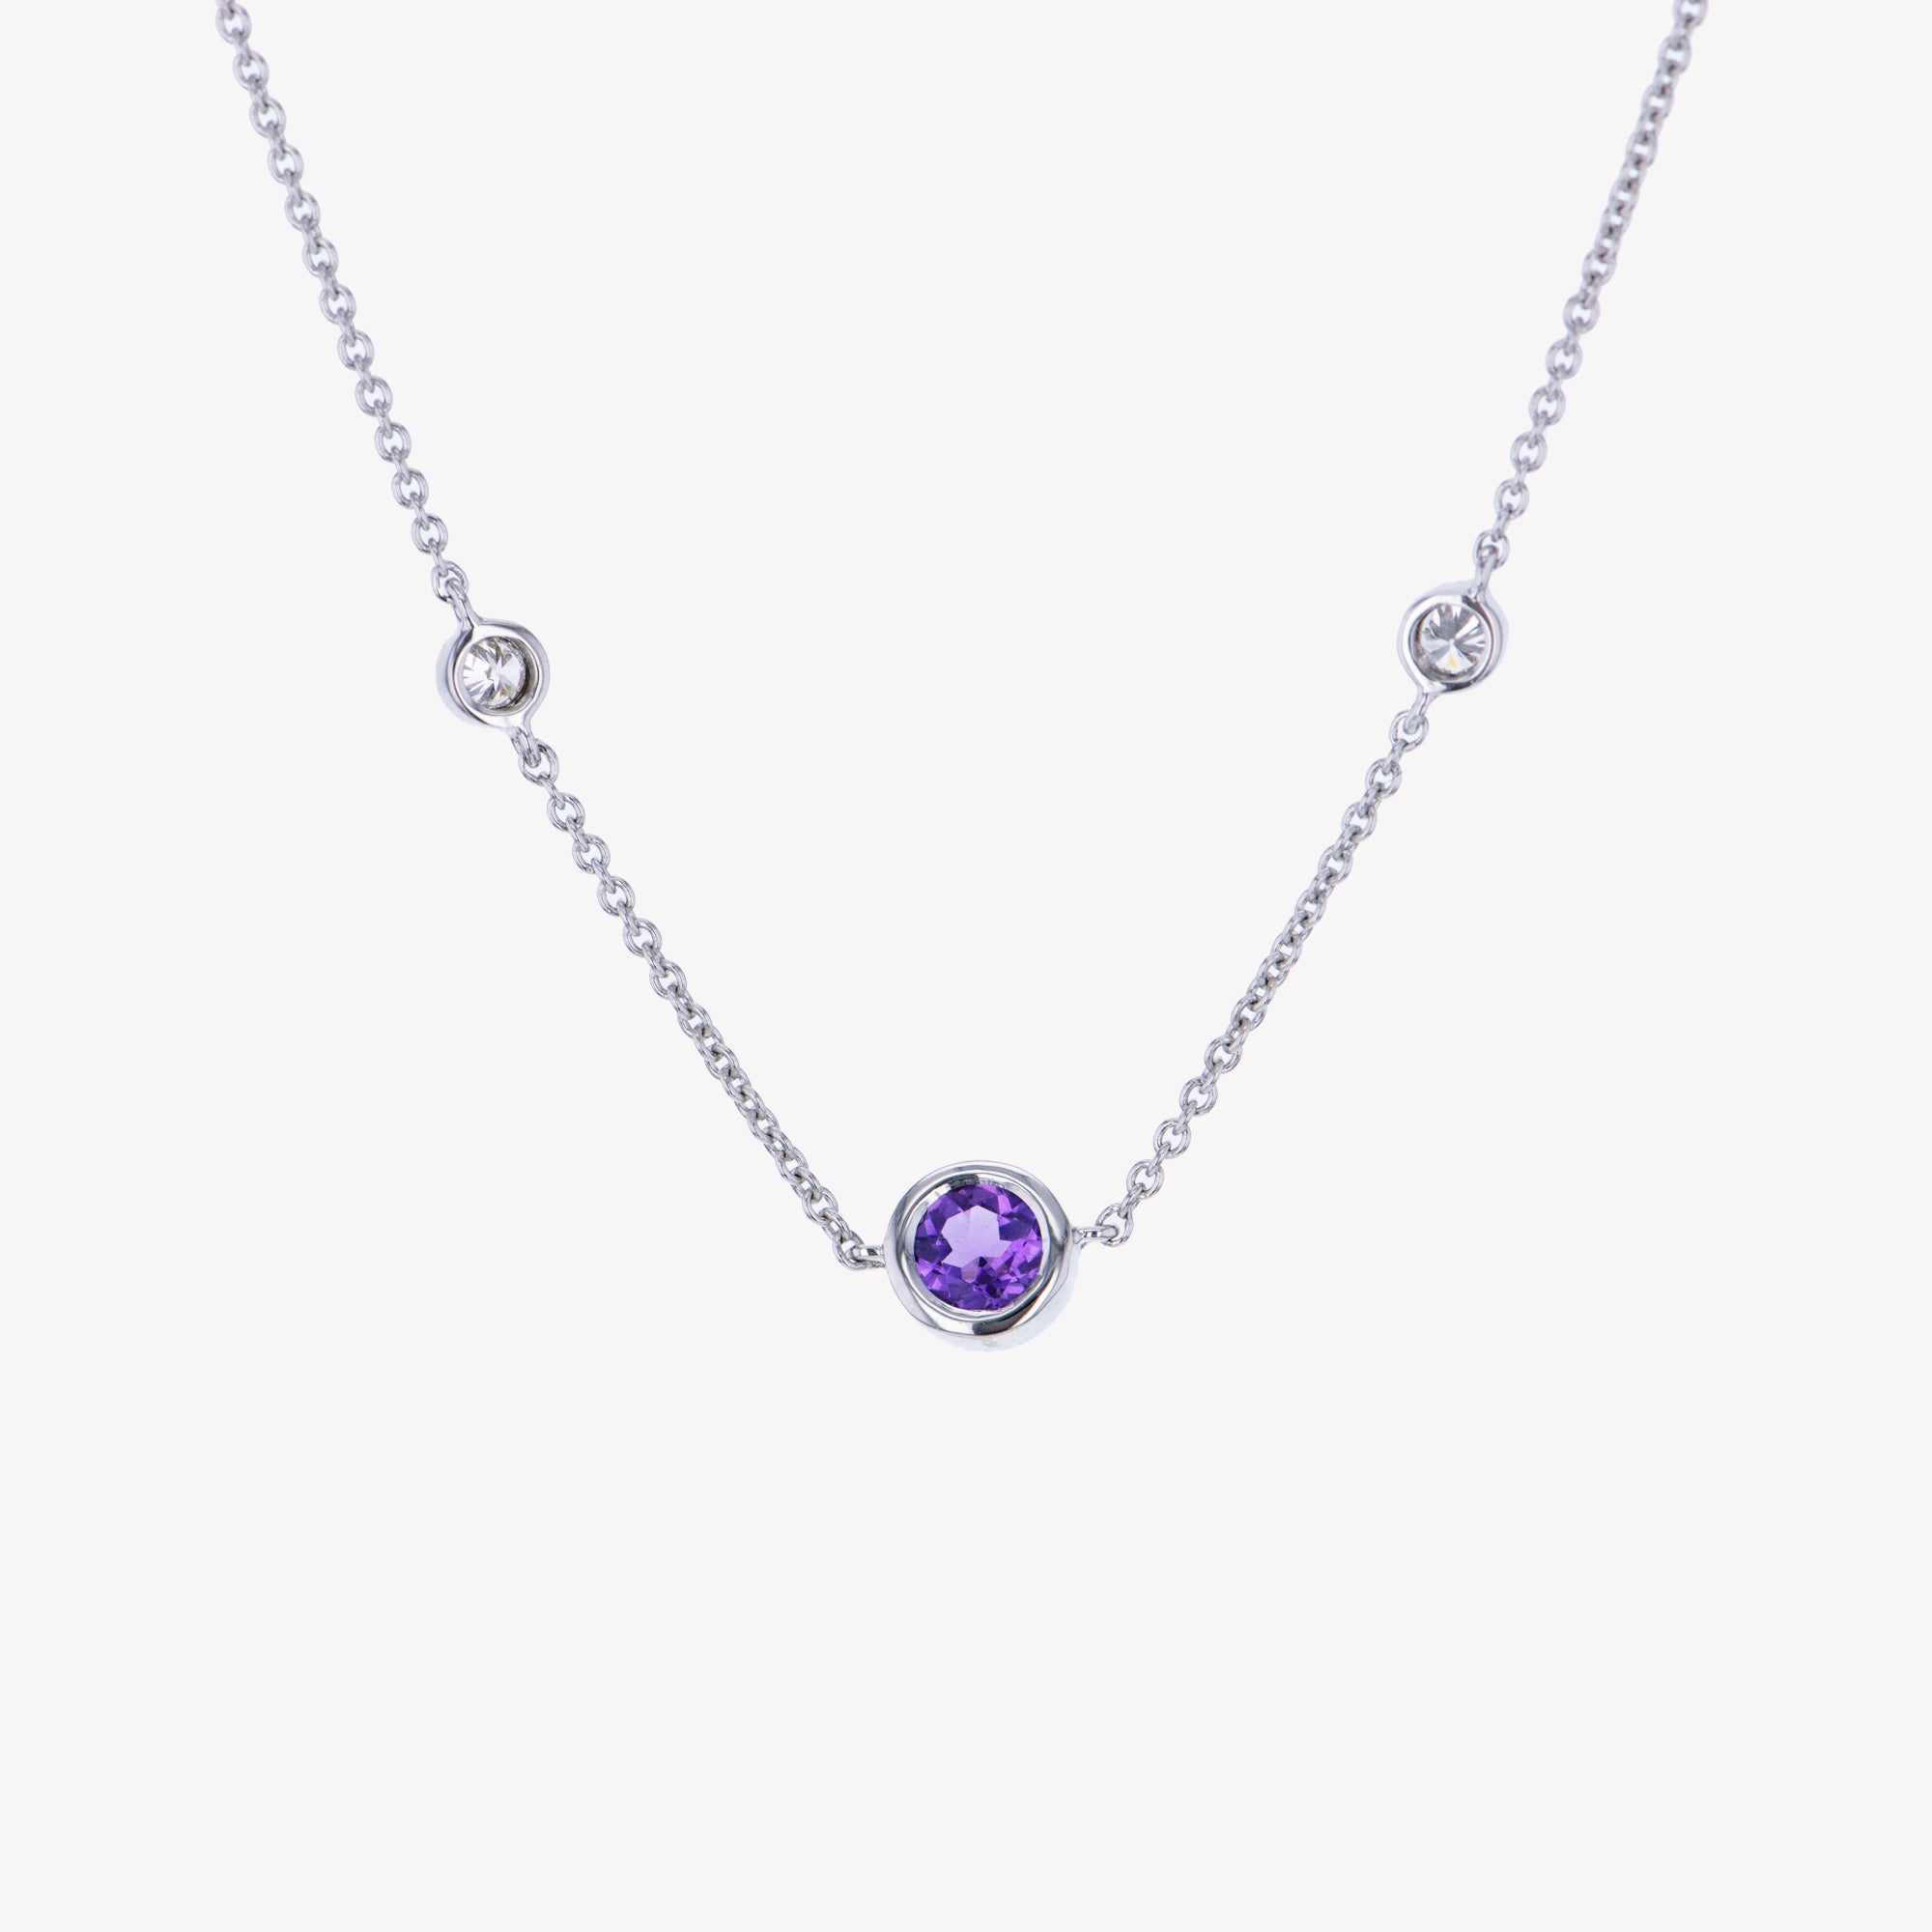 18K W/G Amethyst Diamond Pendant With Chain